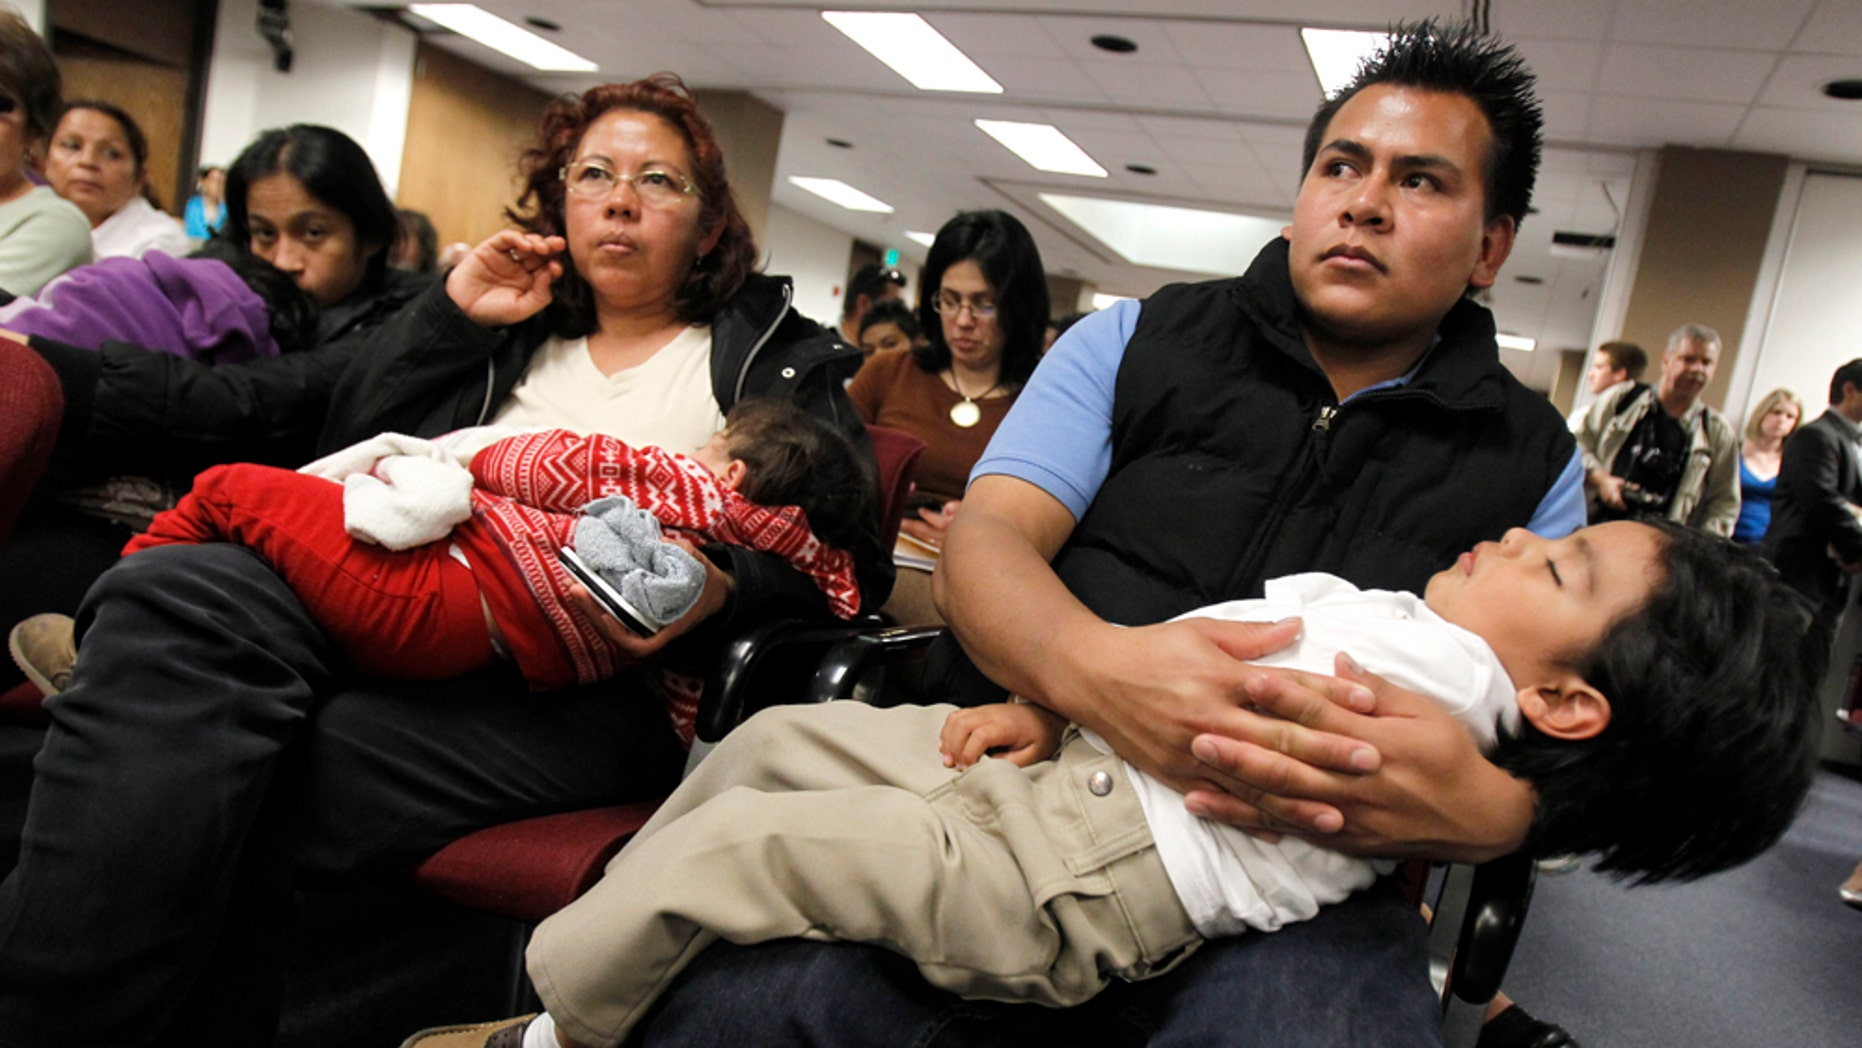 """Marko Garduno, top right, holds a sleeping Dillon Garduno, 2 1/2, as they join dozens of others as they listen to Arizona lawmakers give their first hearing to a bill that challenges automatic U.S. citizenship for children of illegal immigrants, the state's latest foray into the national debate over illegal immigration at the Arizona Capitol, Monday, Feb. 7, 2011, in Phoenix.  The bill to be heard Monday by the Senate judiciary committee seeks a court interpretation on an element of the 14th Amendment, which guarantees citizenship to people born in the U.S. who are """"subject to the jurisdiction"""" of this country. (AP Photo/Ross D. Franklin)"""